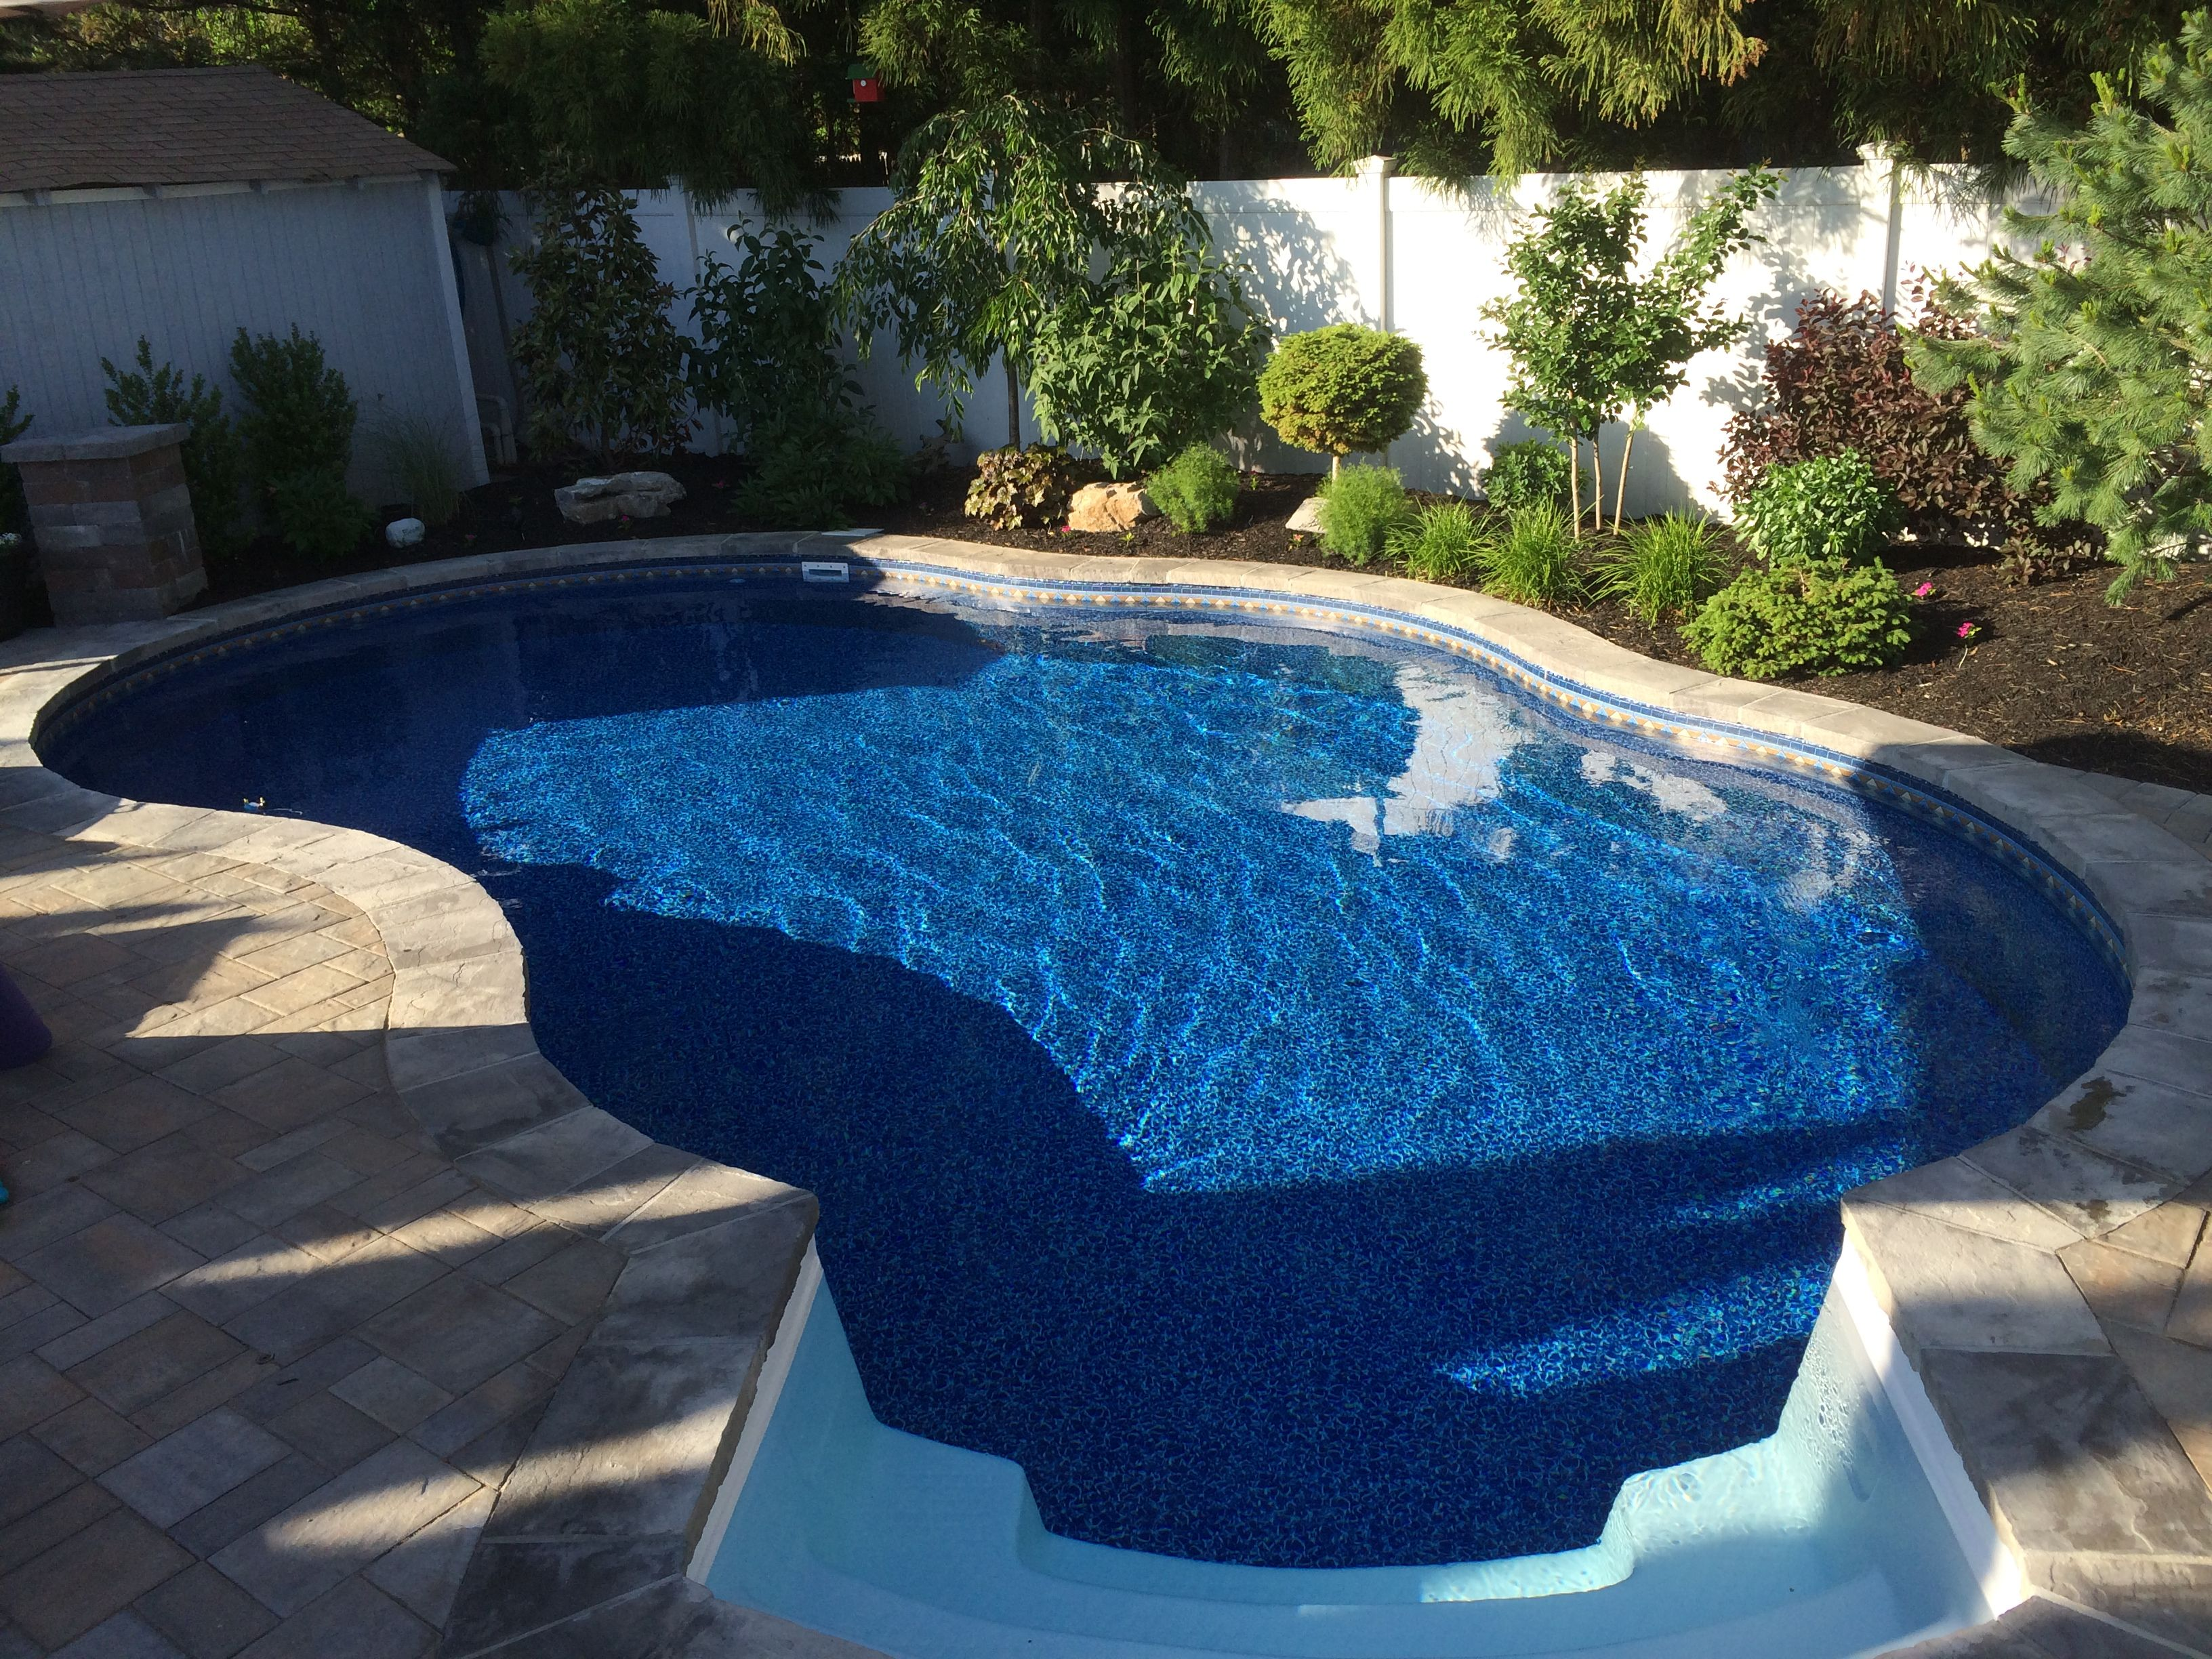 16x28 radiant freeform in ground pool radiant pools 2014 - Above ground pools for small backyards ...